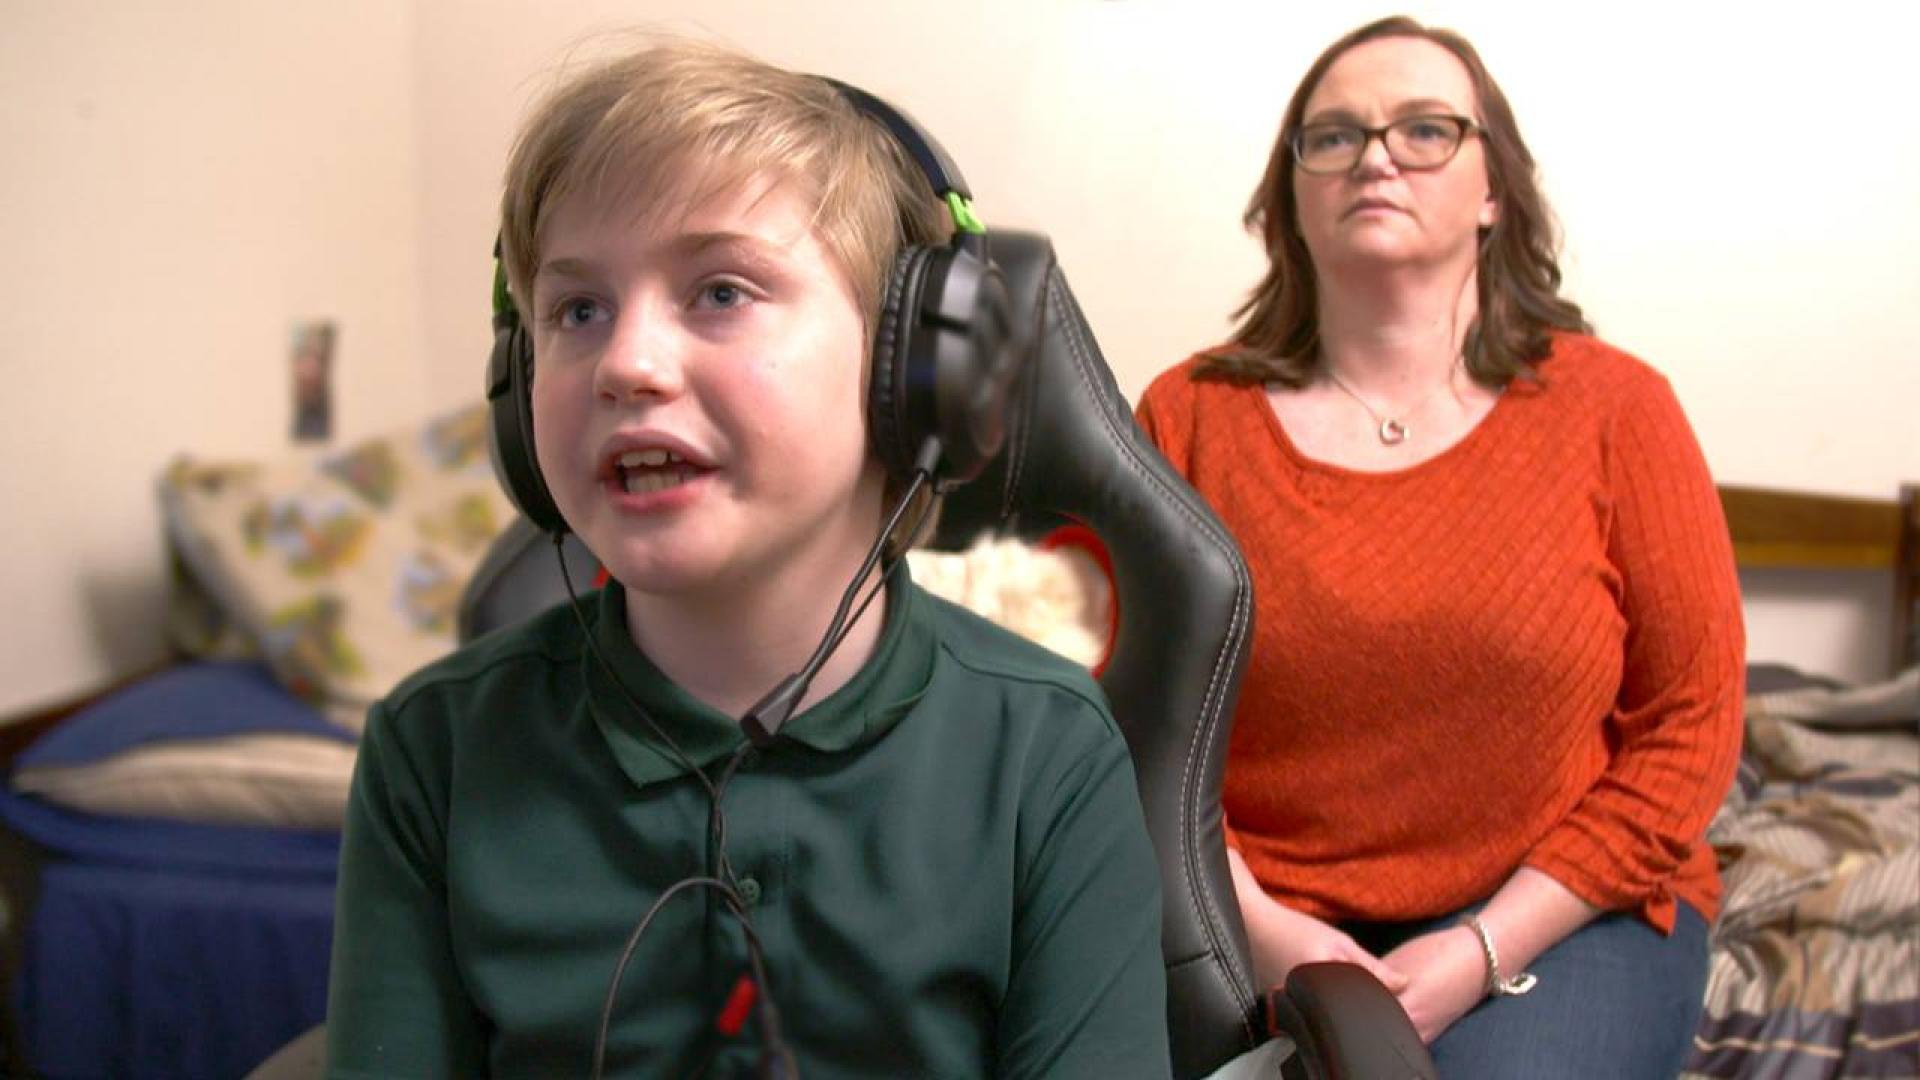 I'm Afraid of My Violent, Video Gaming Addicted Son"